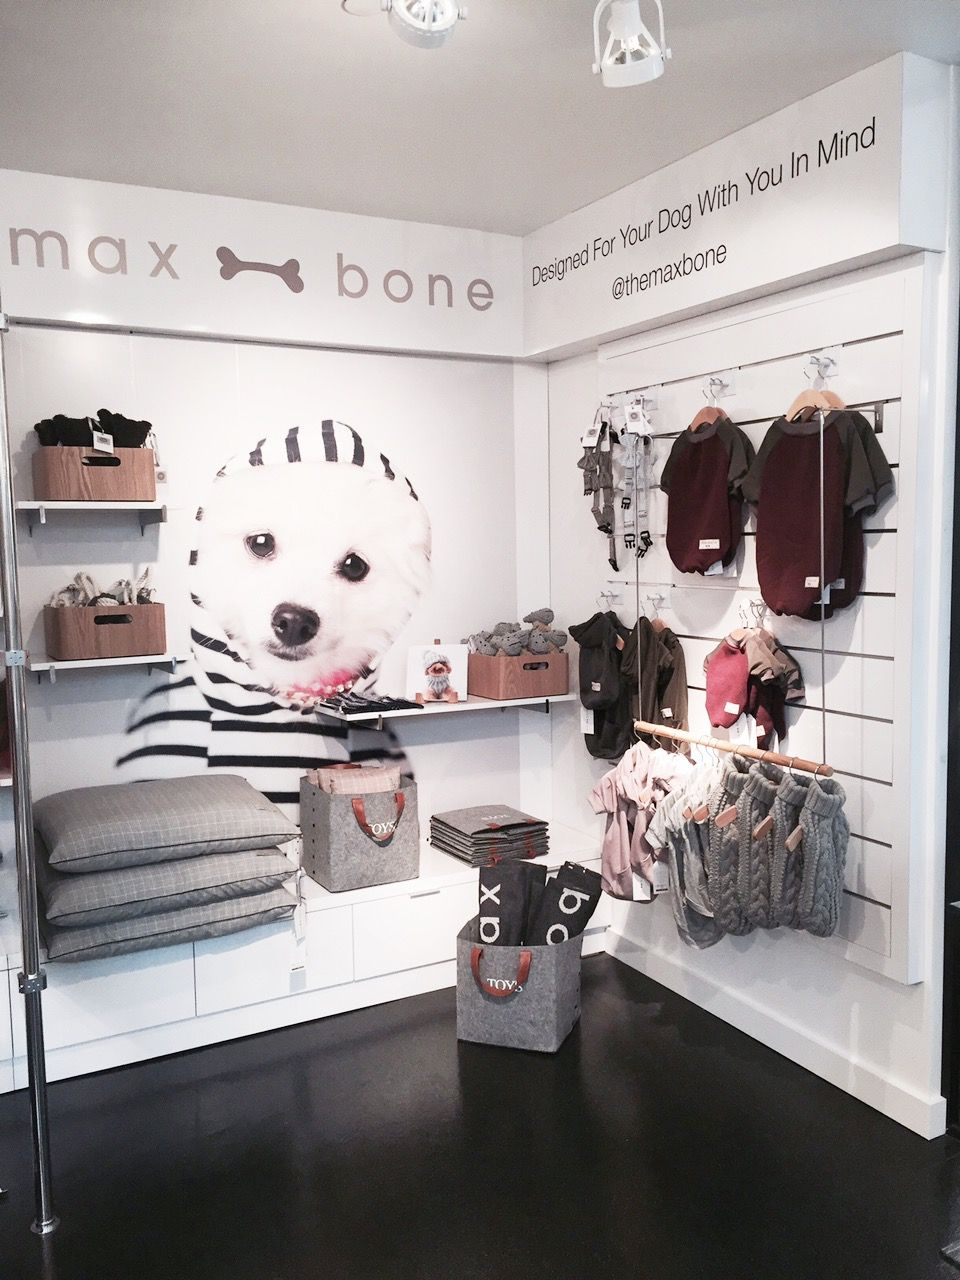 Maxbone Store In Beverly Hills Pet Store Ideas Pet Store Design